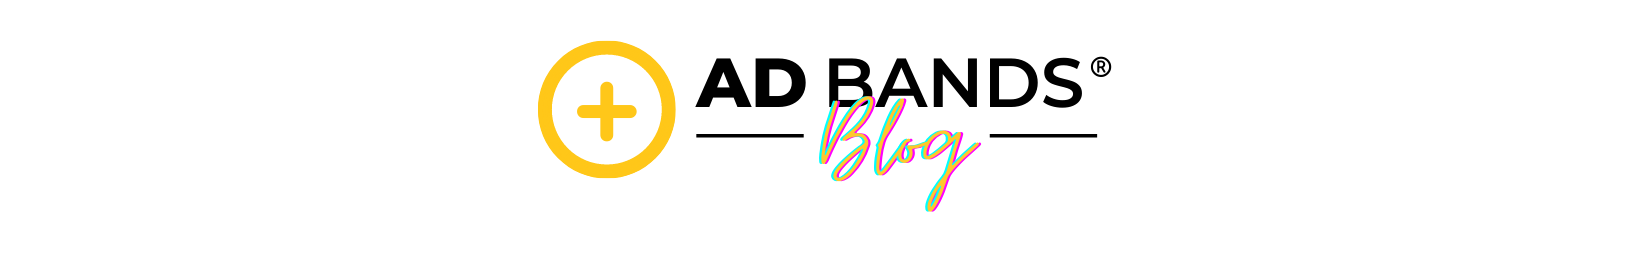 Ad Bands Blog